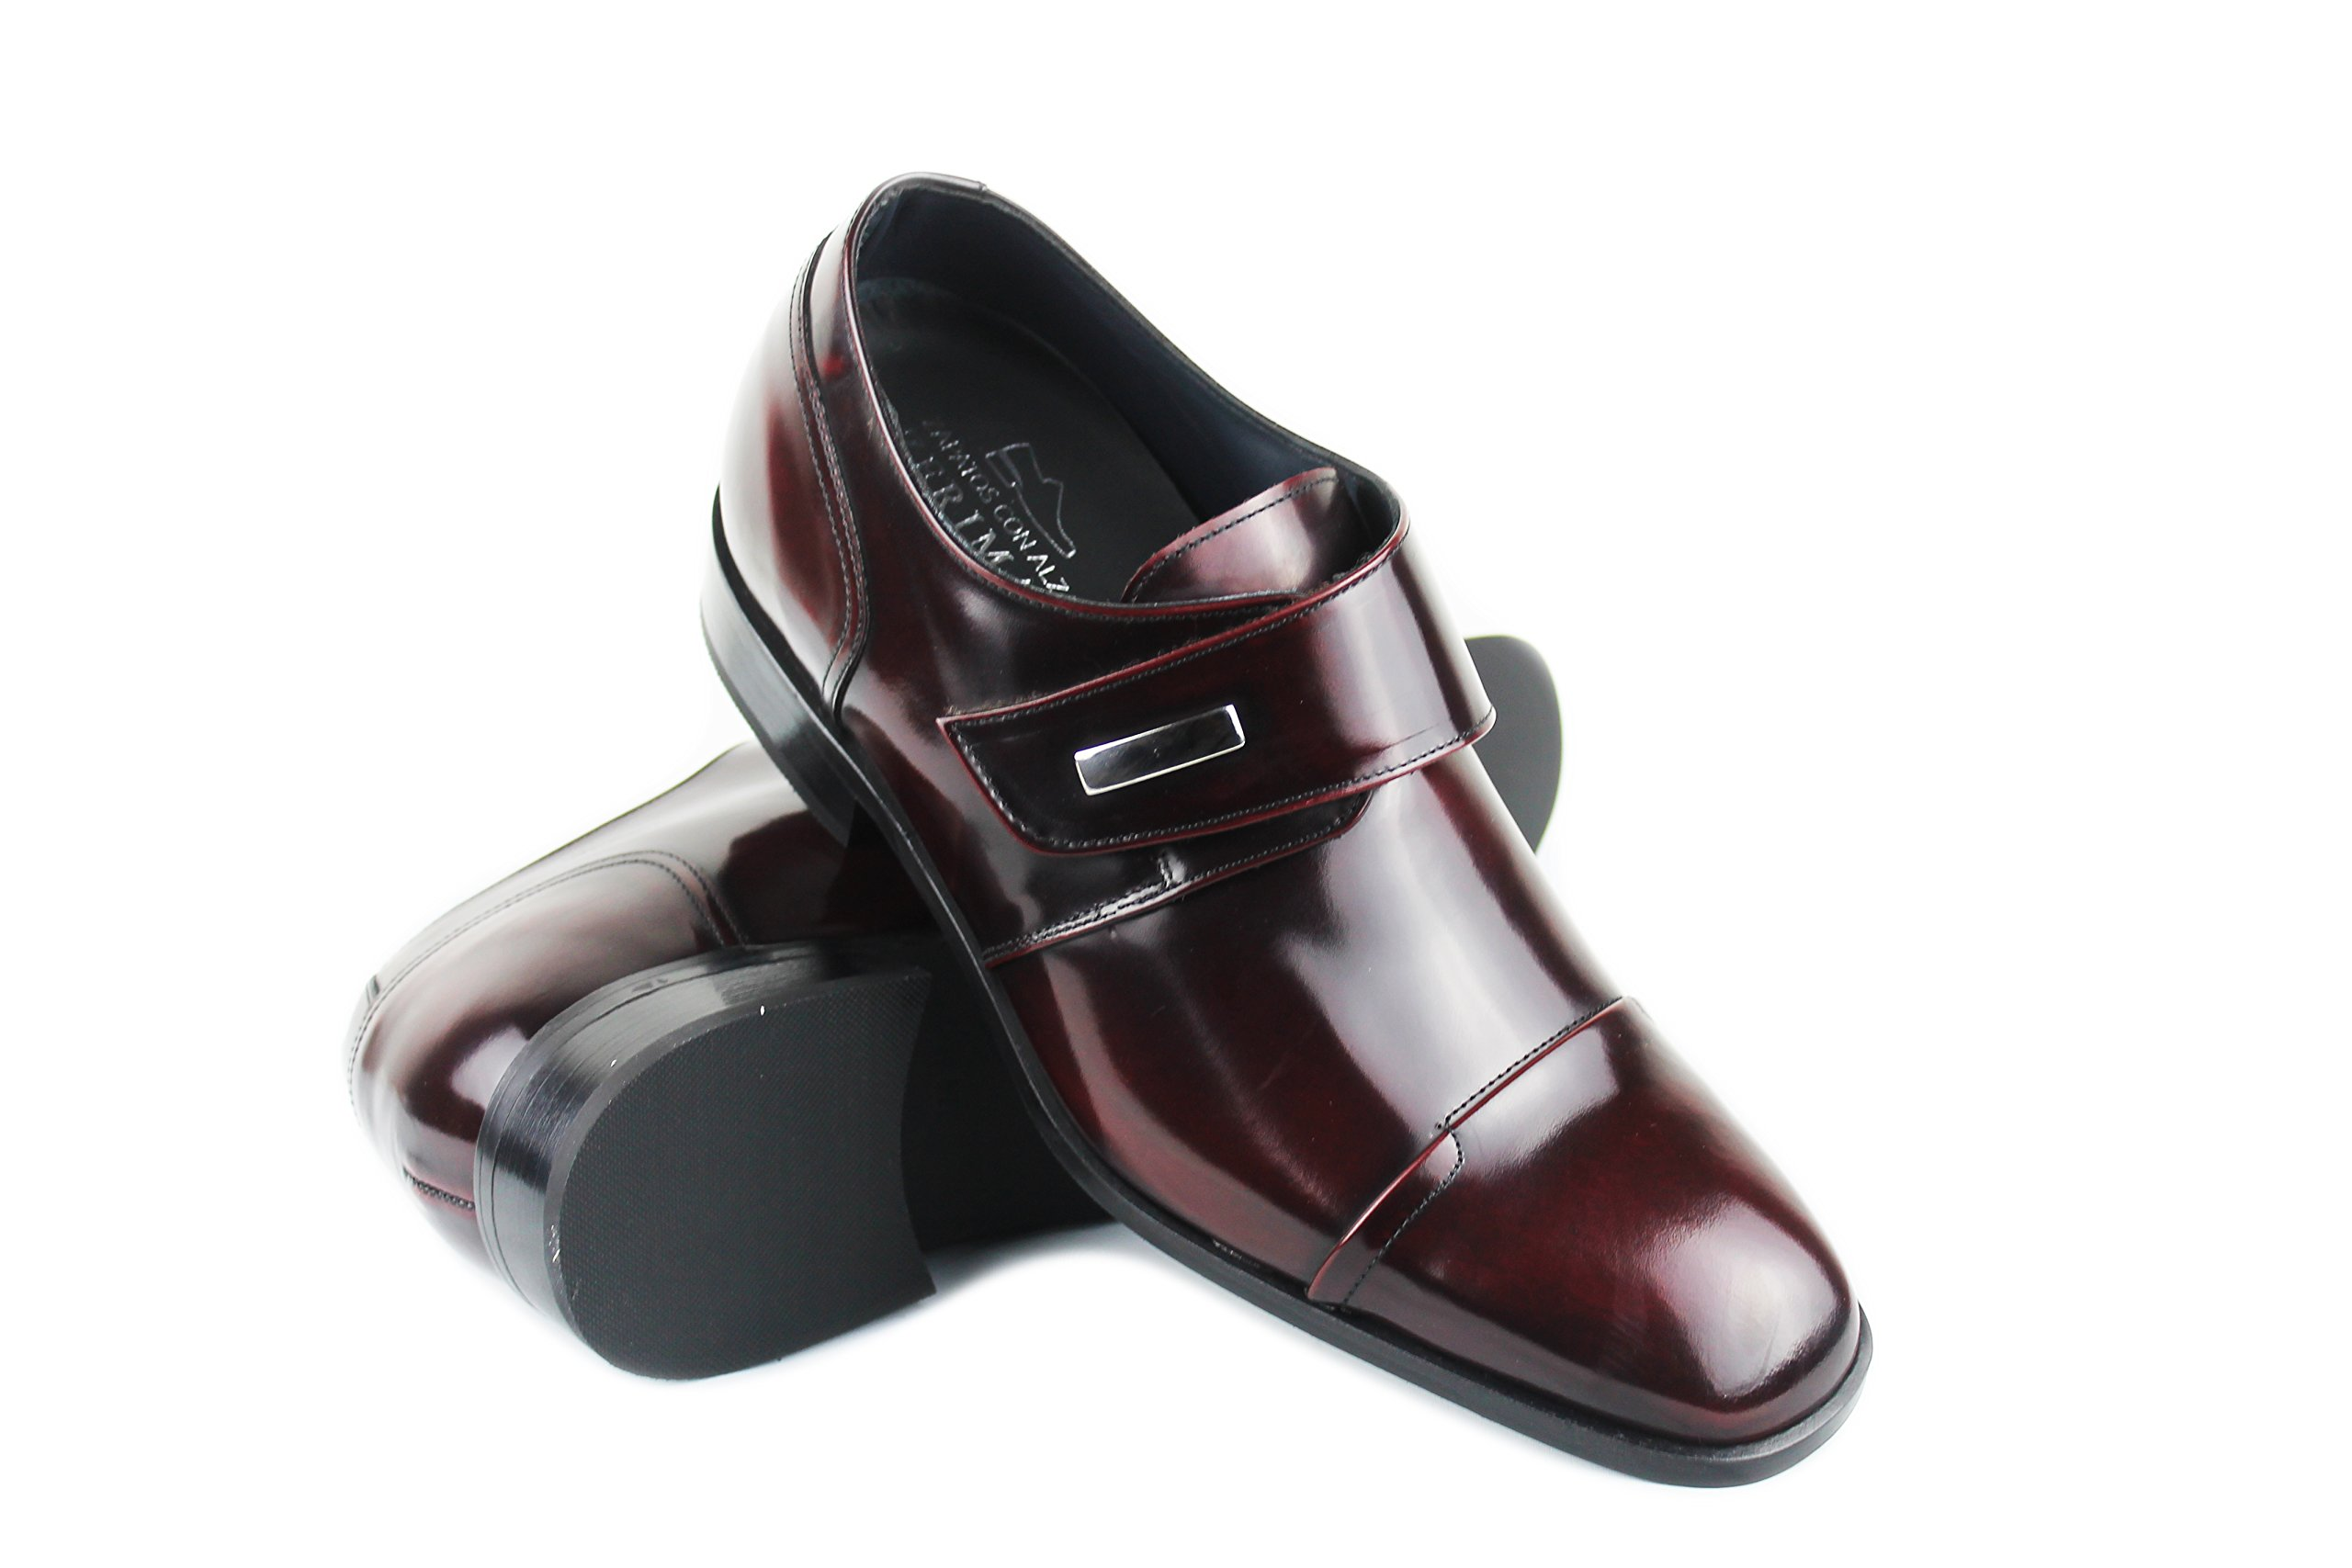 ZERIMAR height Increasing Elevator Shoes For Men Add +2,8 Inch To Your height Quality 100% Leather Shoes Color Bordeaux Size EU 39 US 7.5